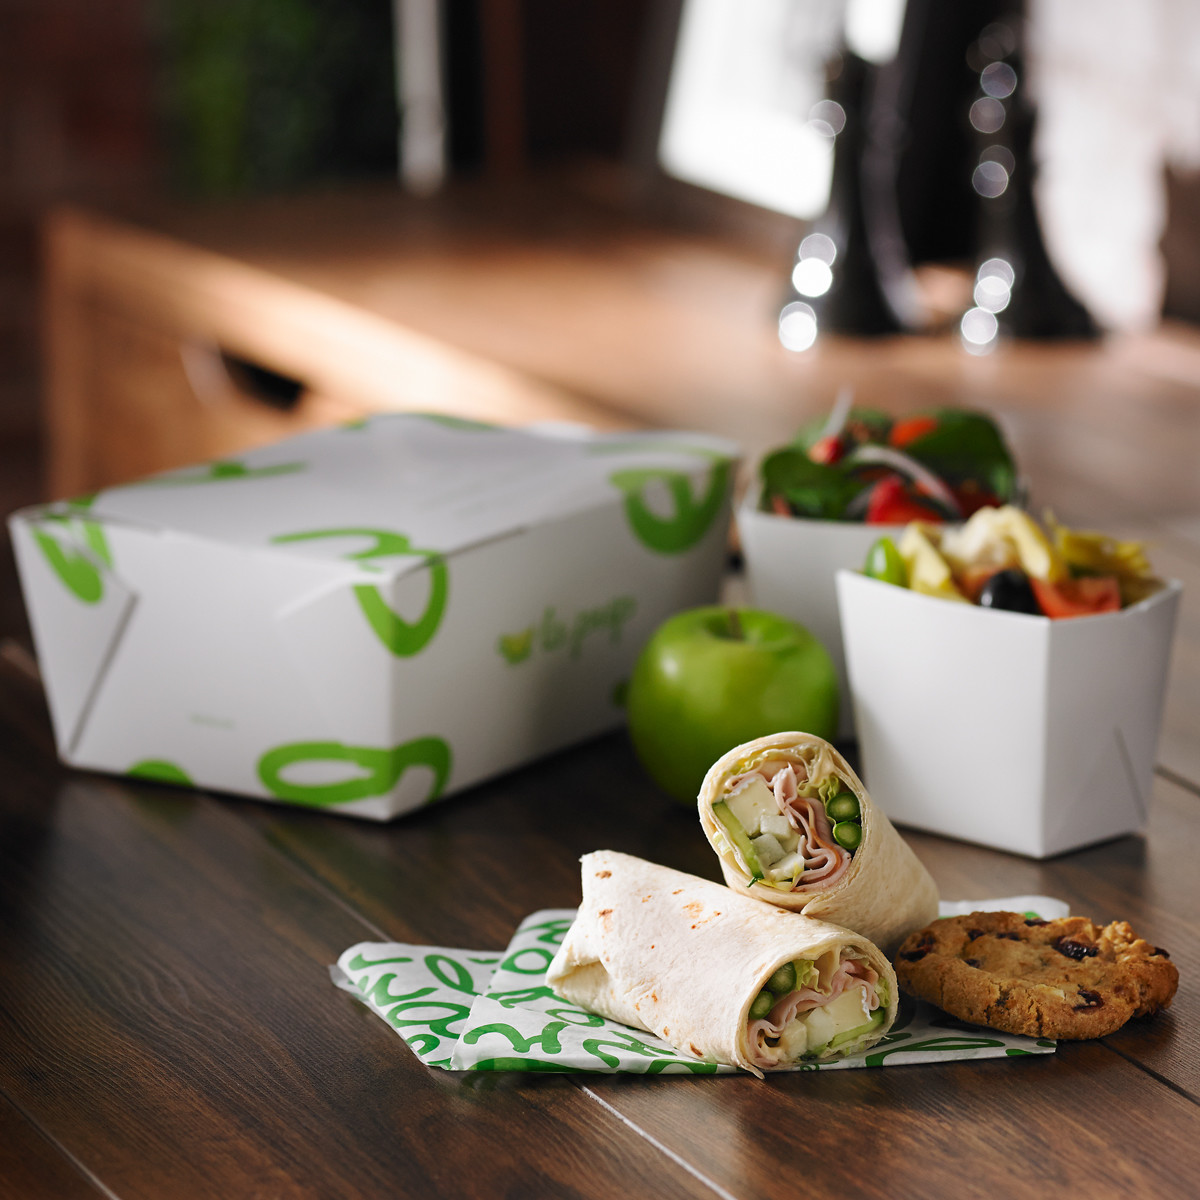 Wrap Lunch Box